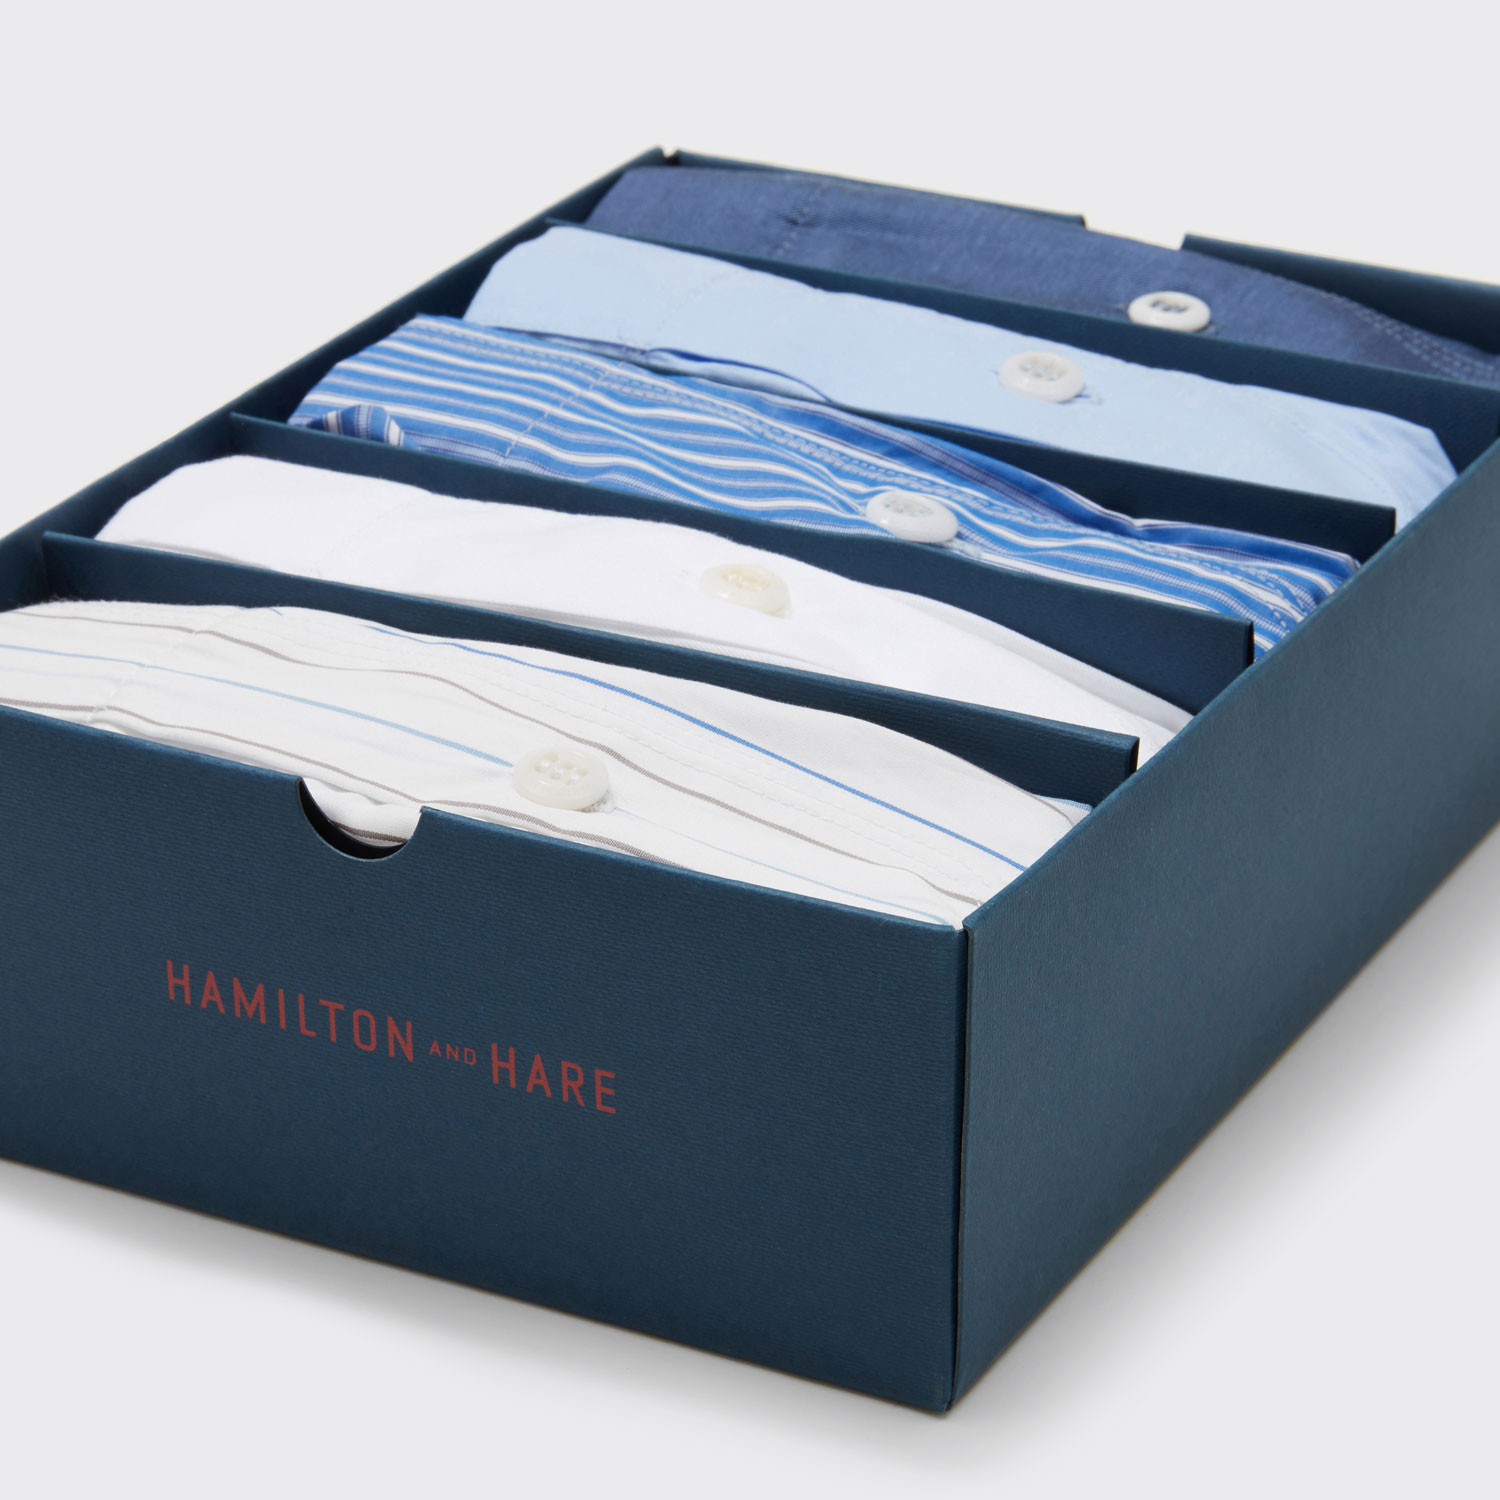 Progress Packaging Underwear Undergarment Loungewear Retail Luxury Hamilton And Hare Bespoke Custom Made Multipack Inserts Manufacture